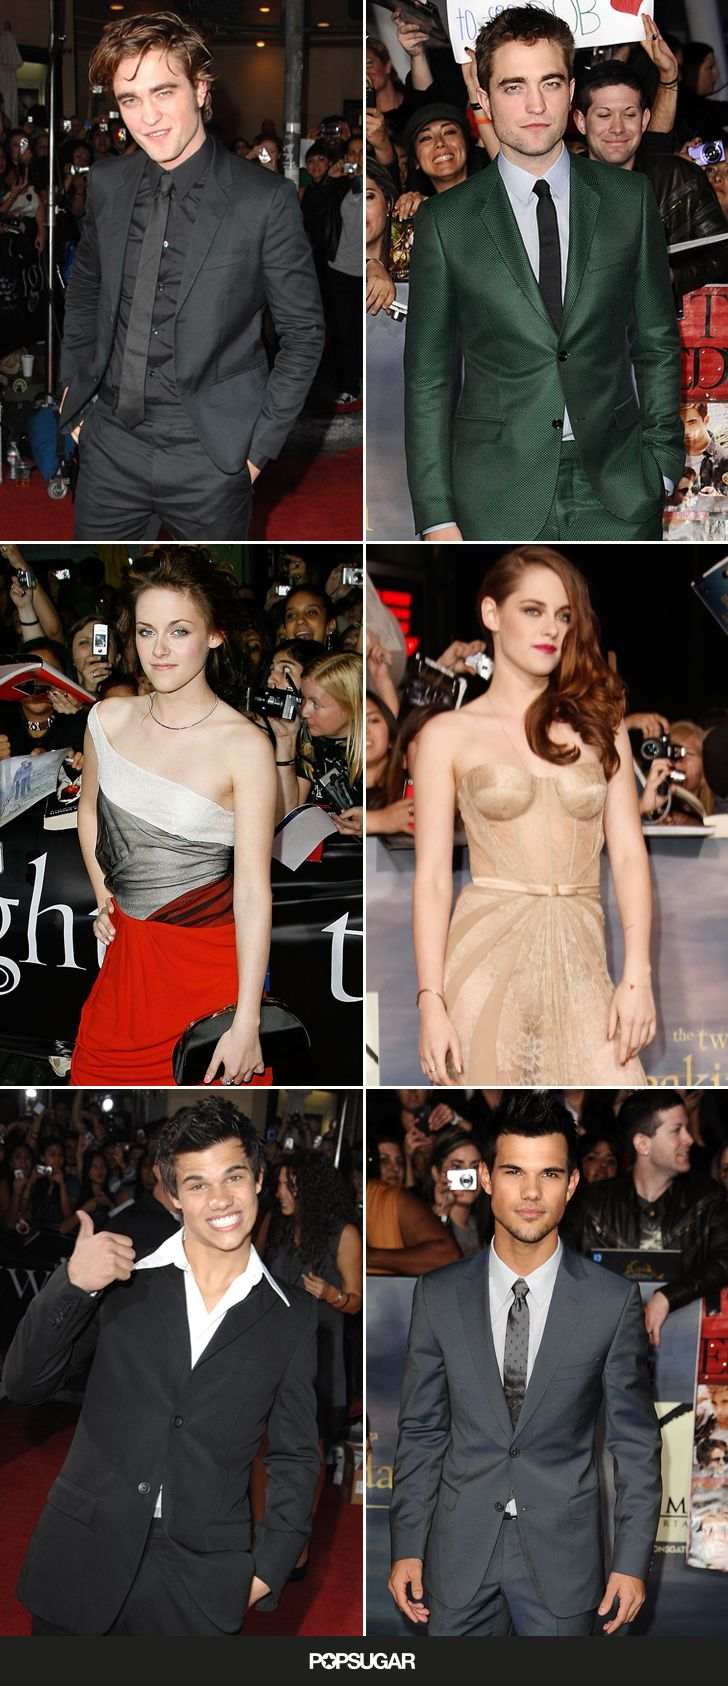 These pics, from the first and last Twilight premieres, say a LOT.